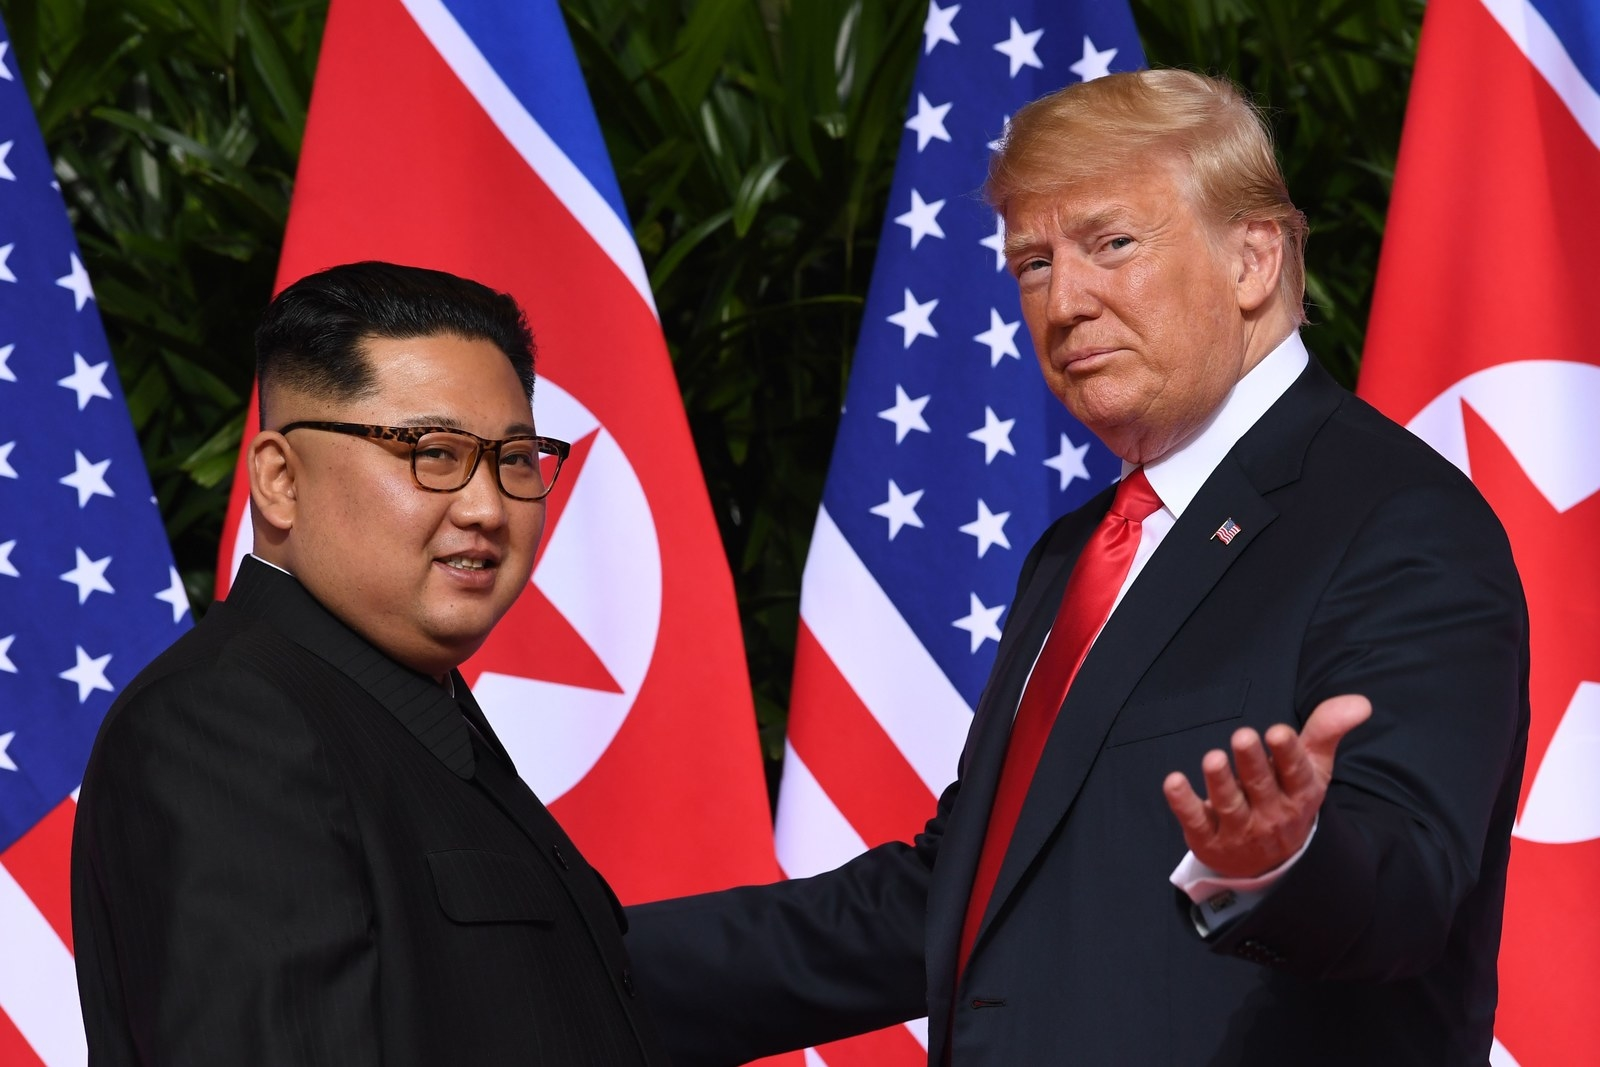 Kim Jong Un and Donald Trump shake hands at the start of their summit.